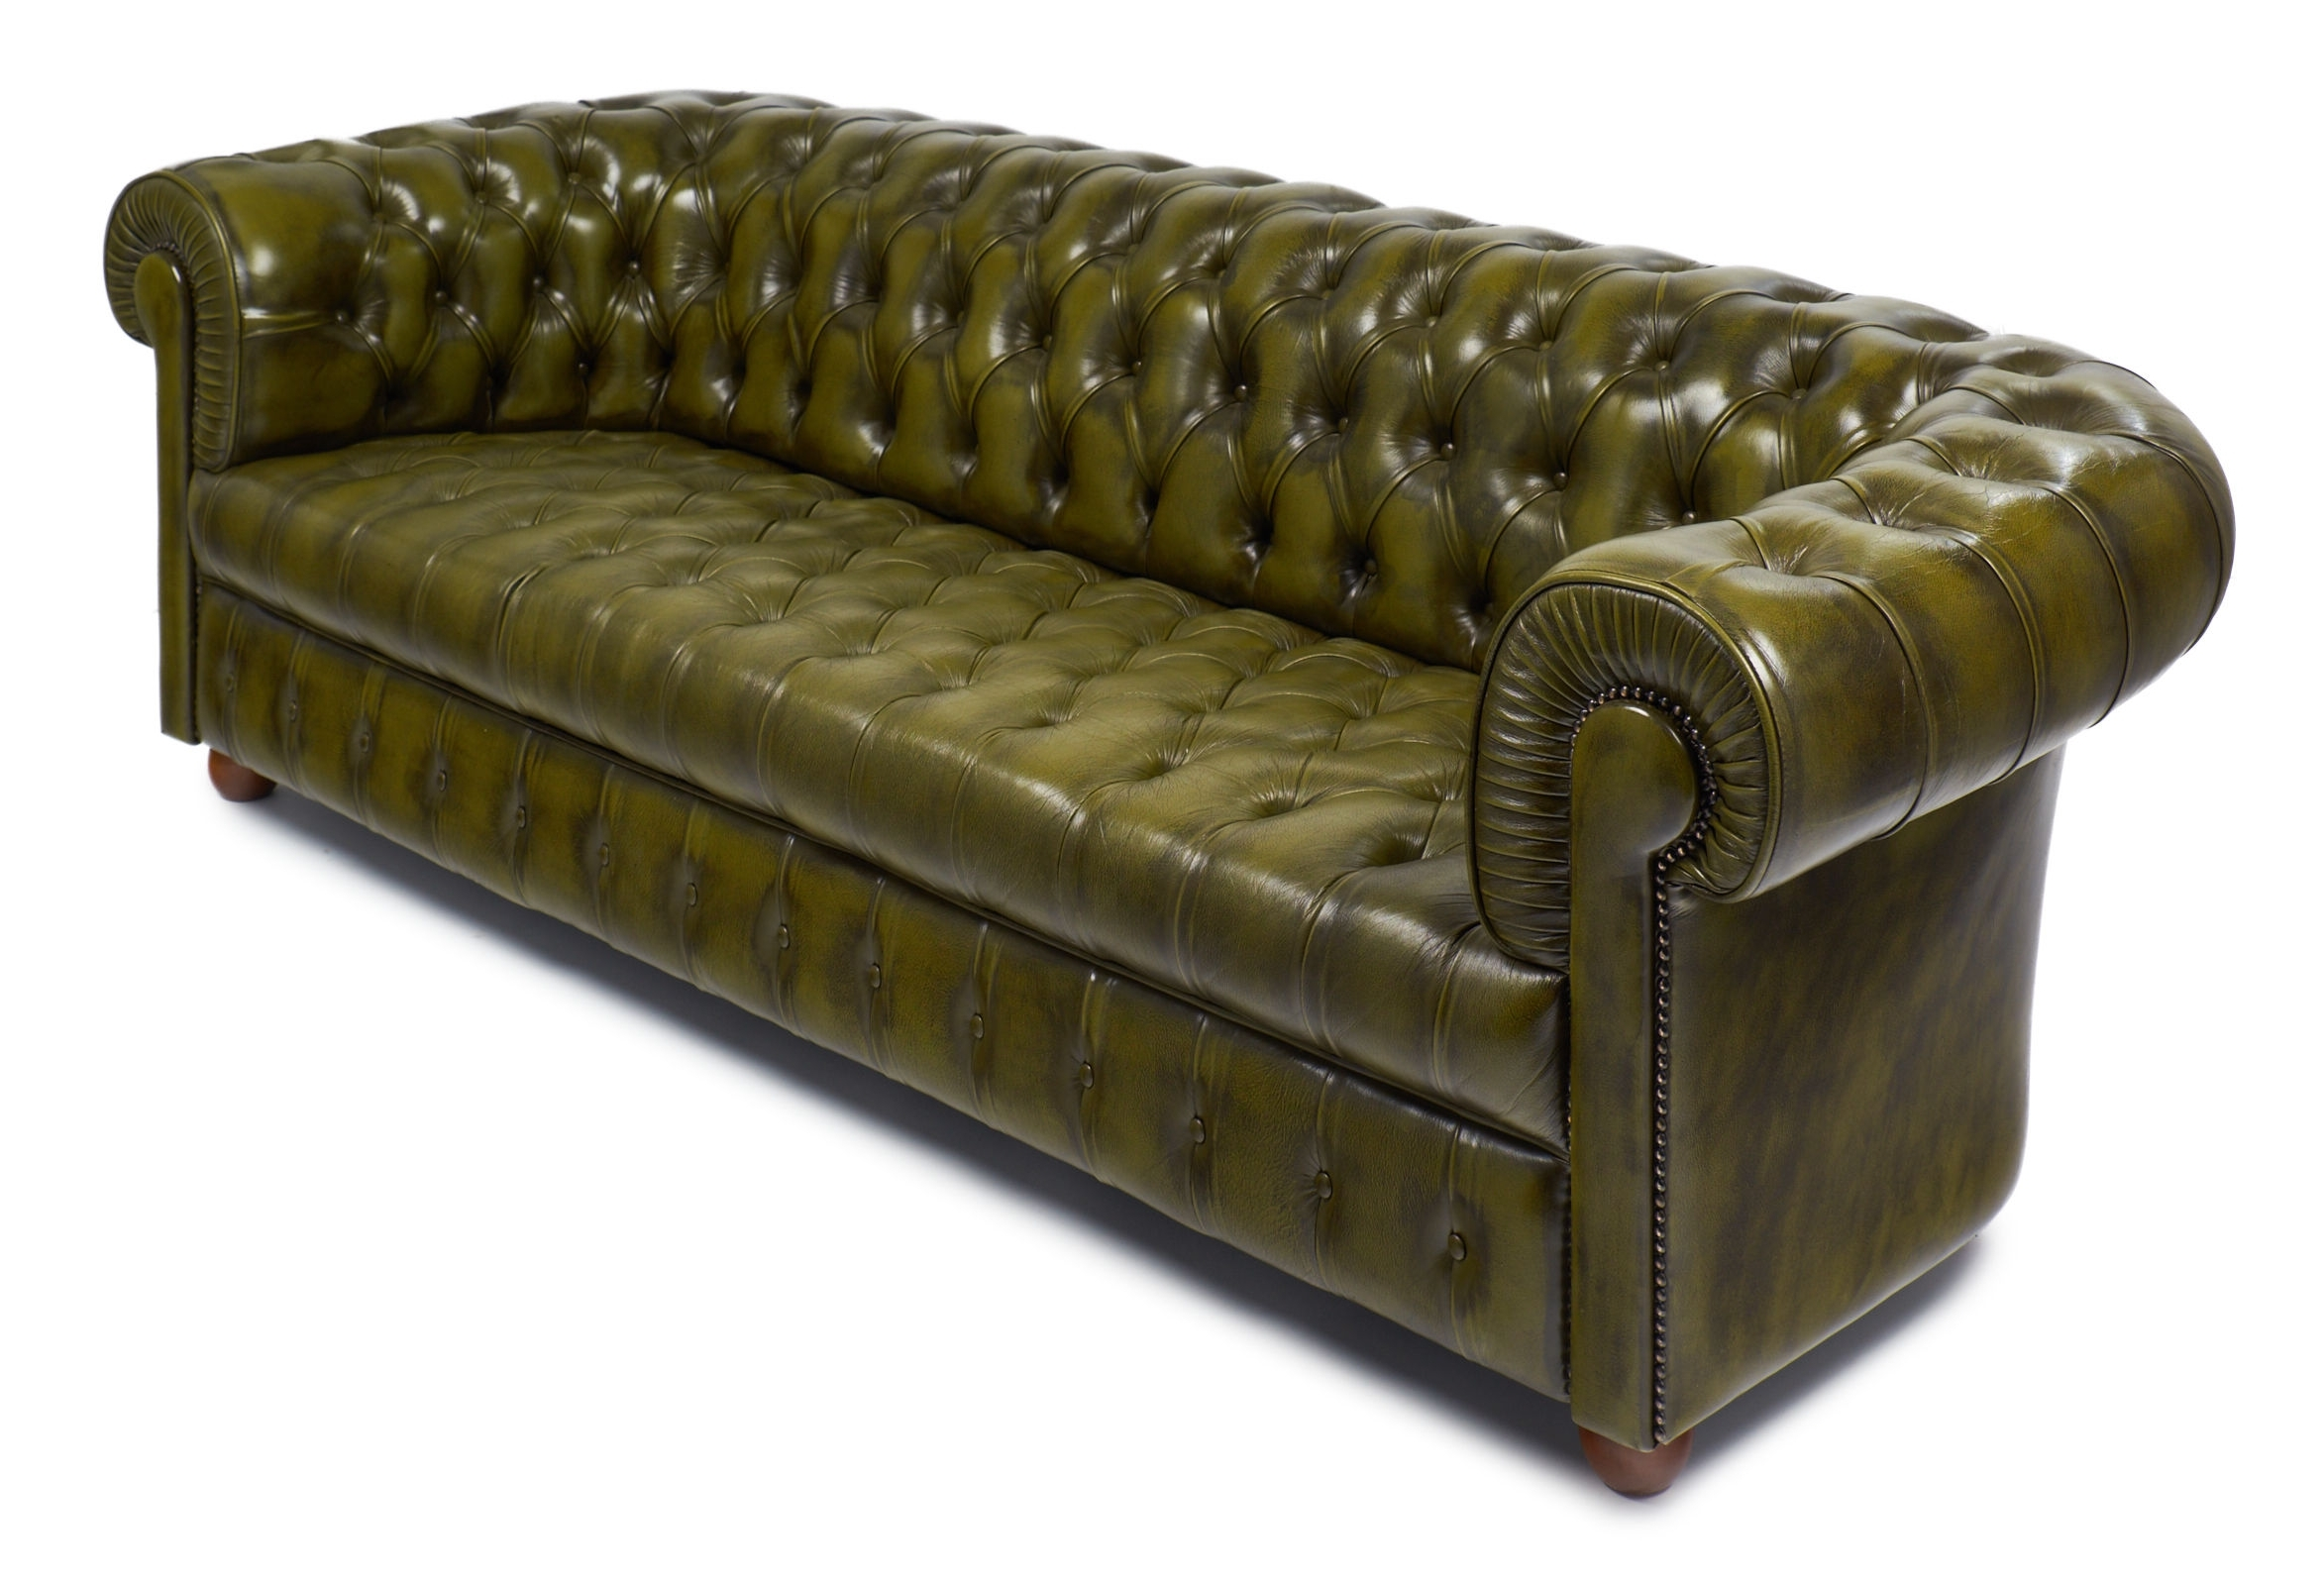 Vintage Green Leather English Chesterfield Sofa – Jean Marc Fray With Regard To Preferred Vintage Chesterfield Sofas (View 10 of 15)